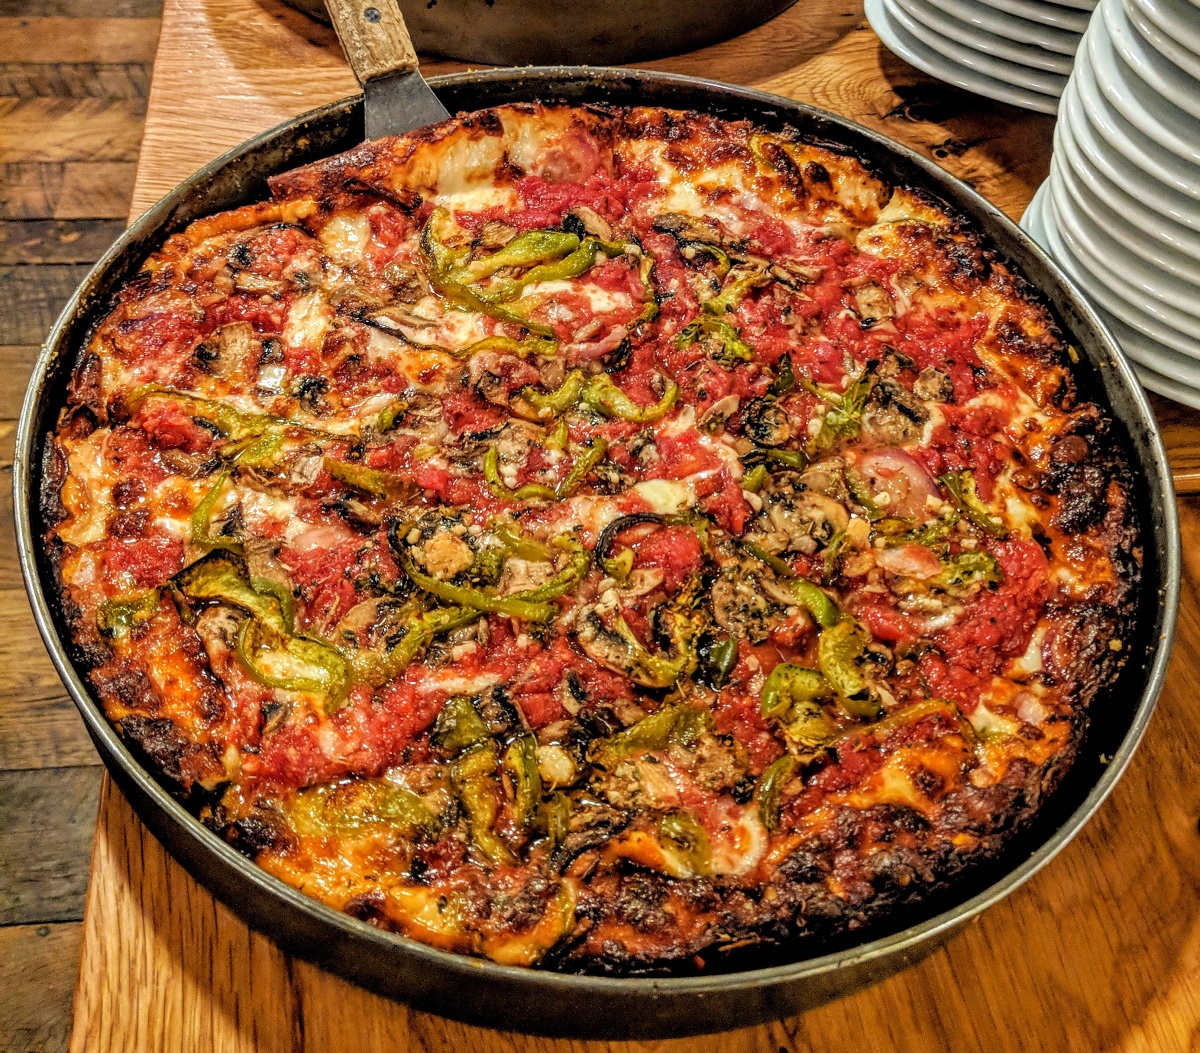 Take a Chicago pizza tour and deep dish pizza on a weekend in Chicago.